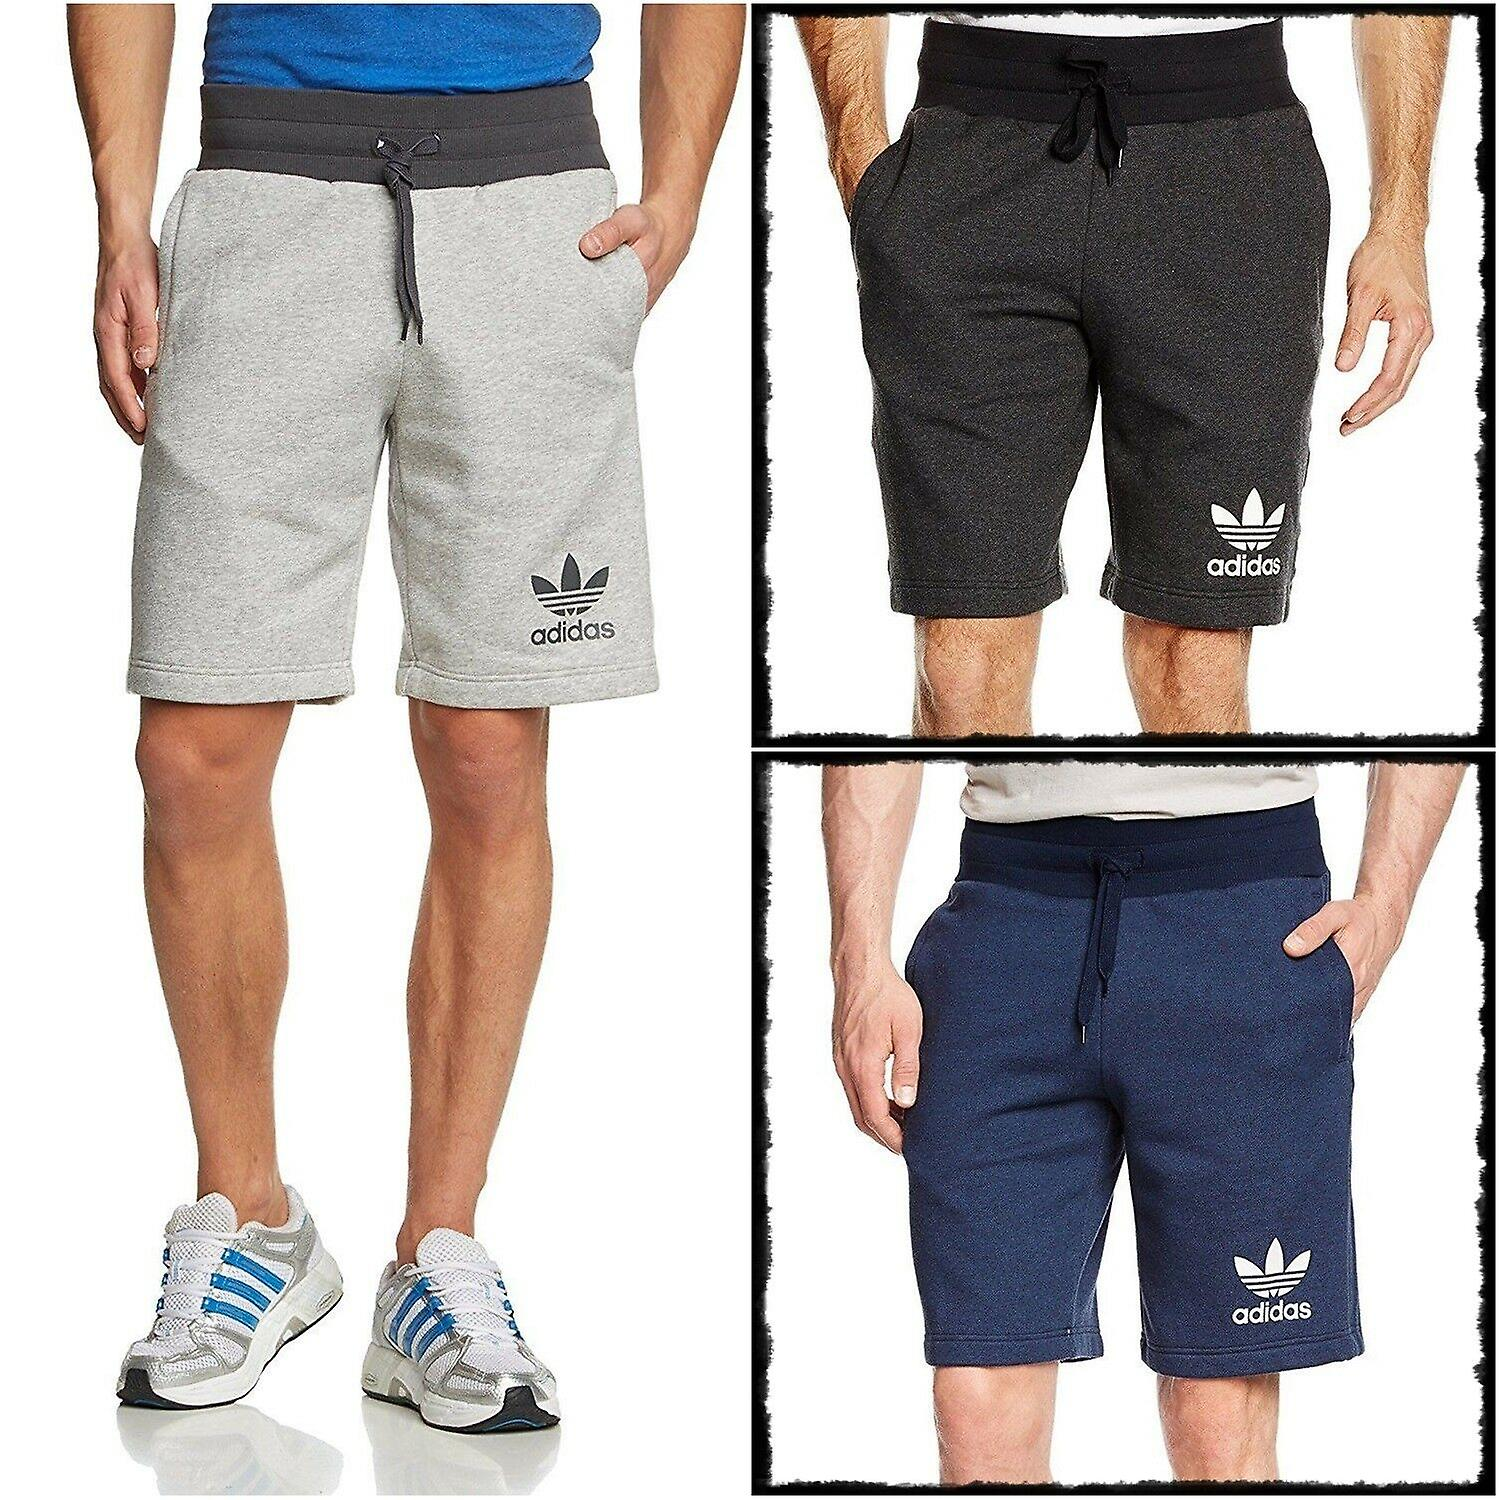 adidas fleece mens shorts